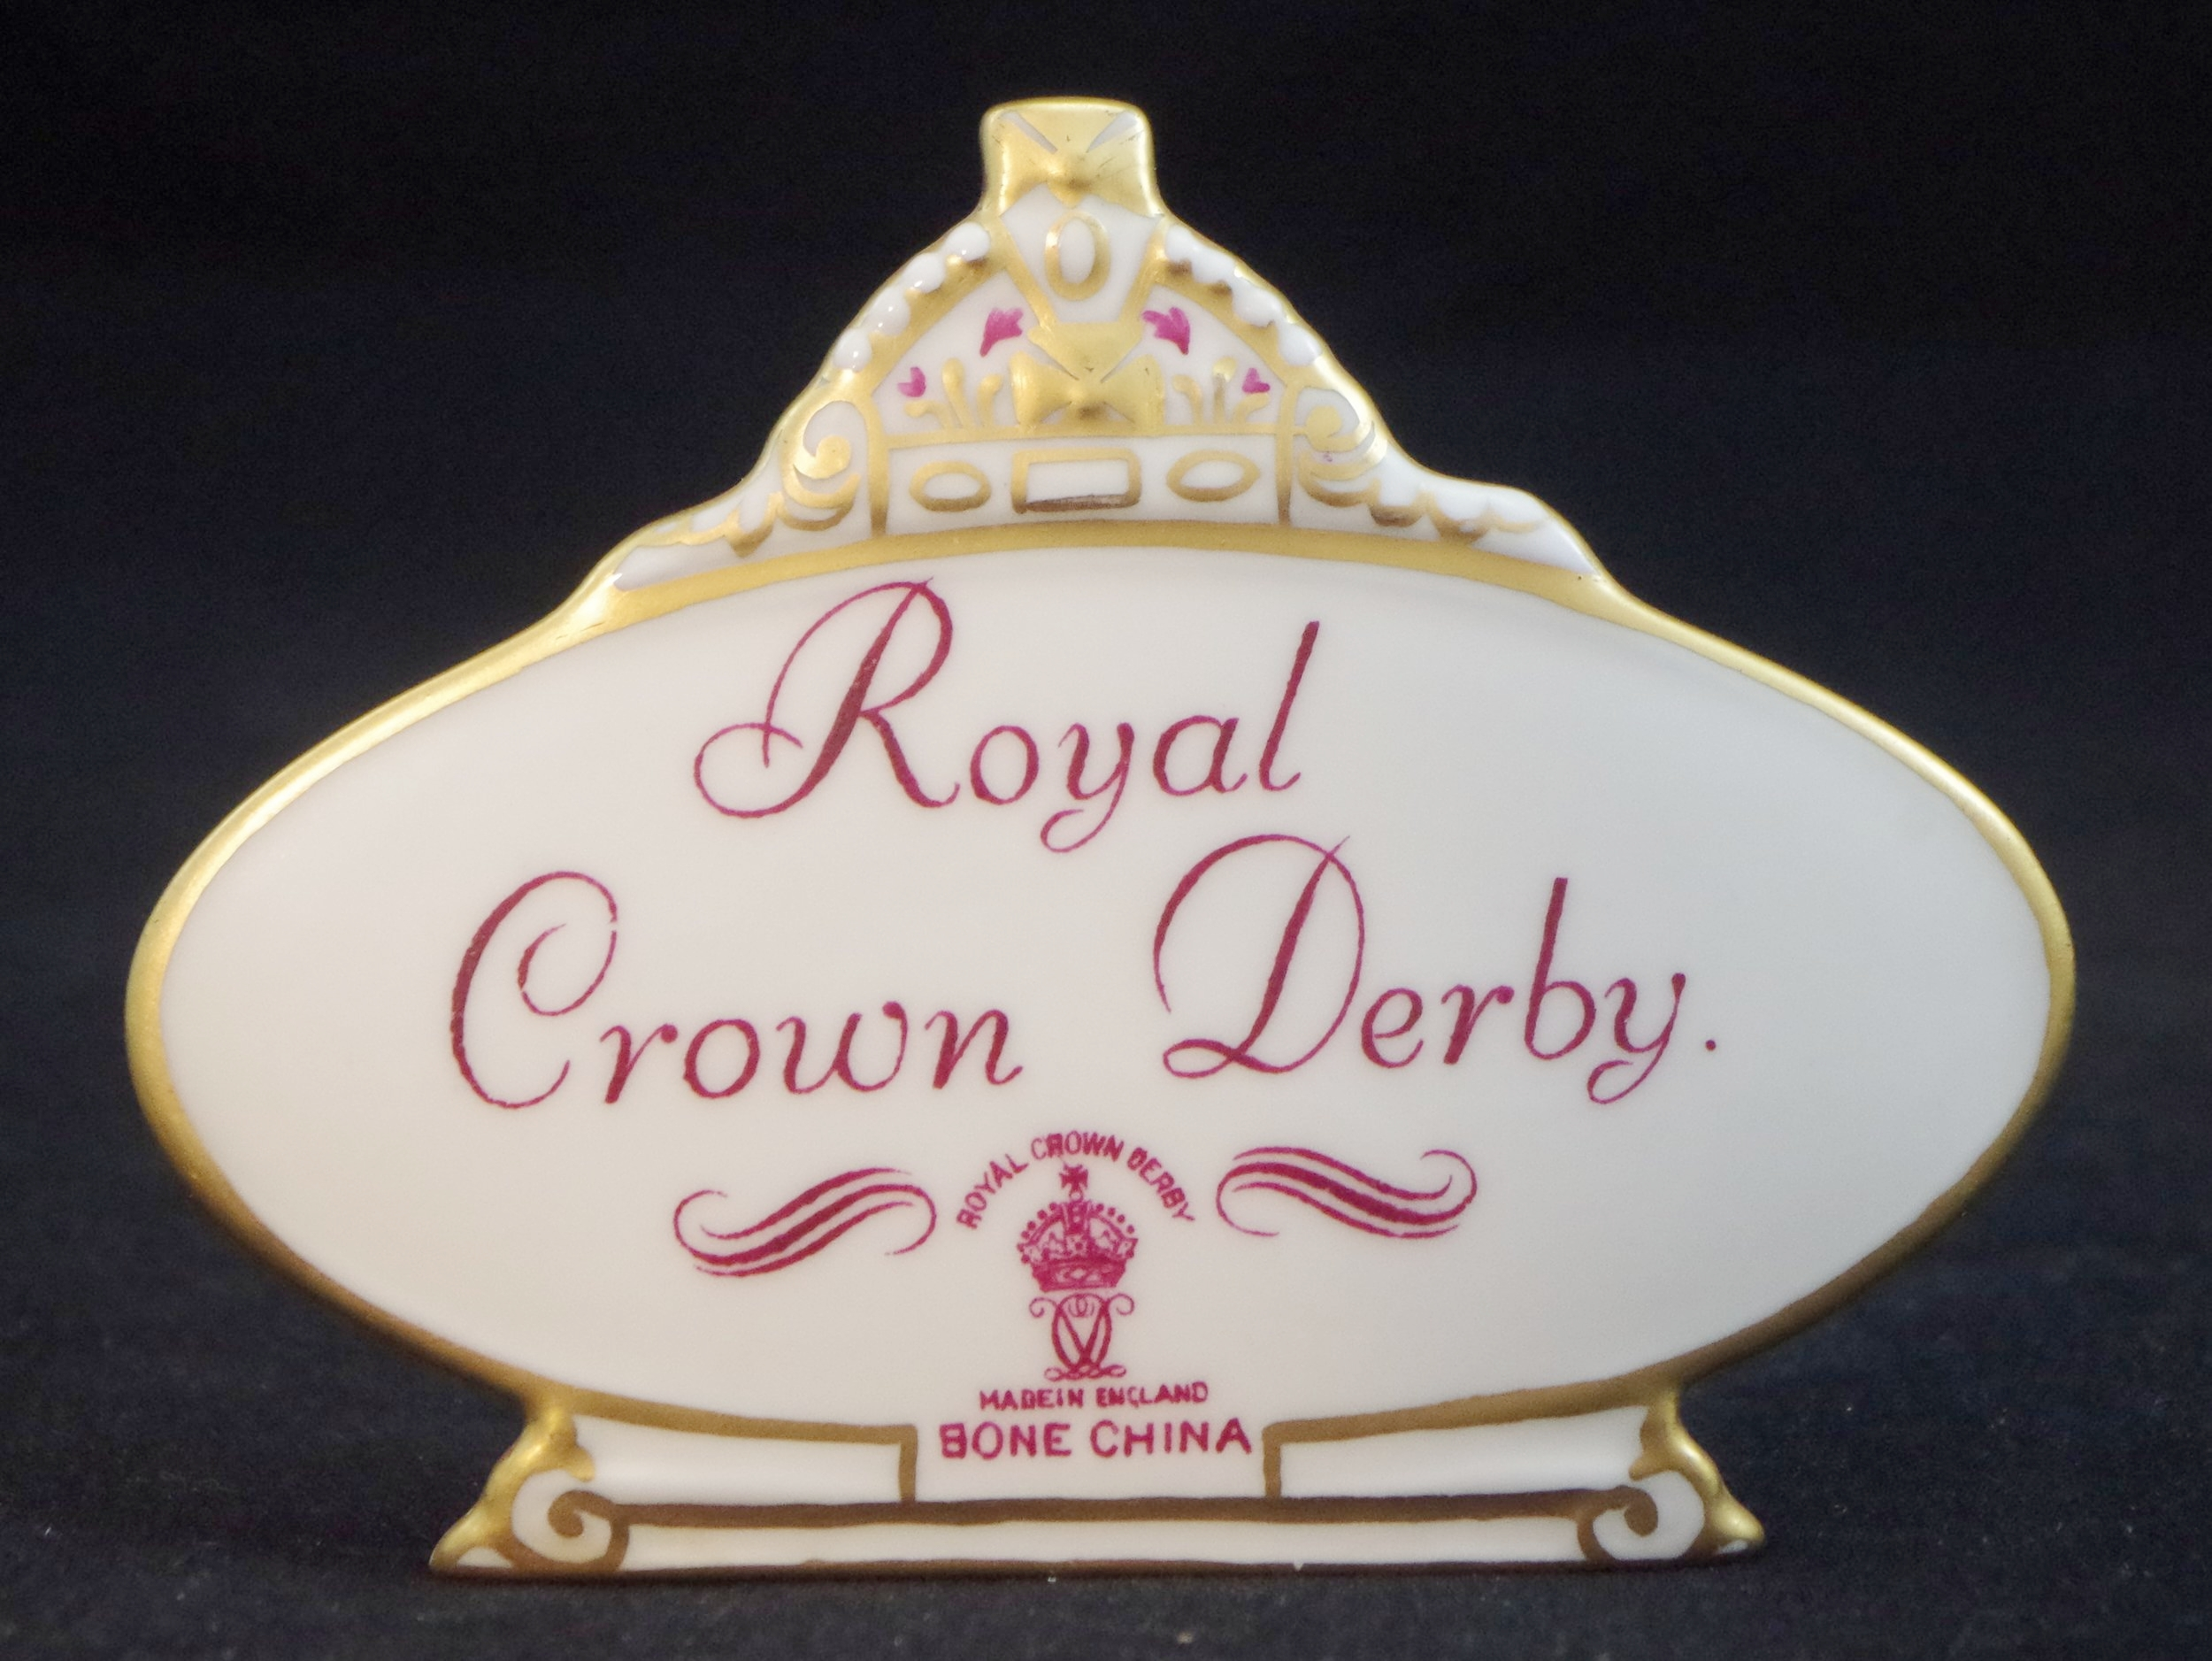 royal-crown-derby-retailer's-plaque